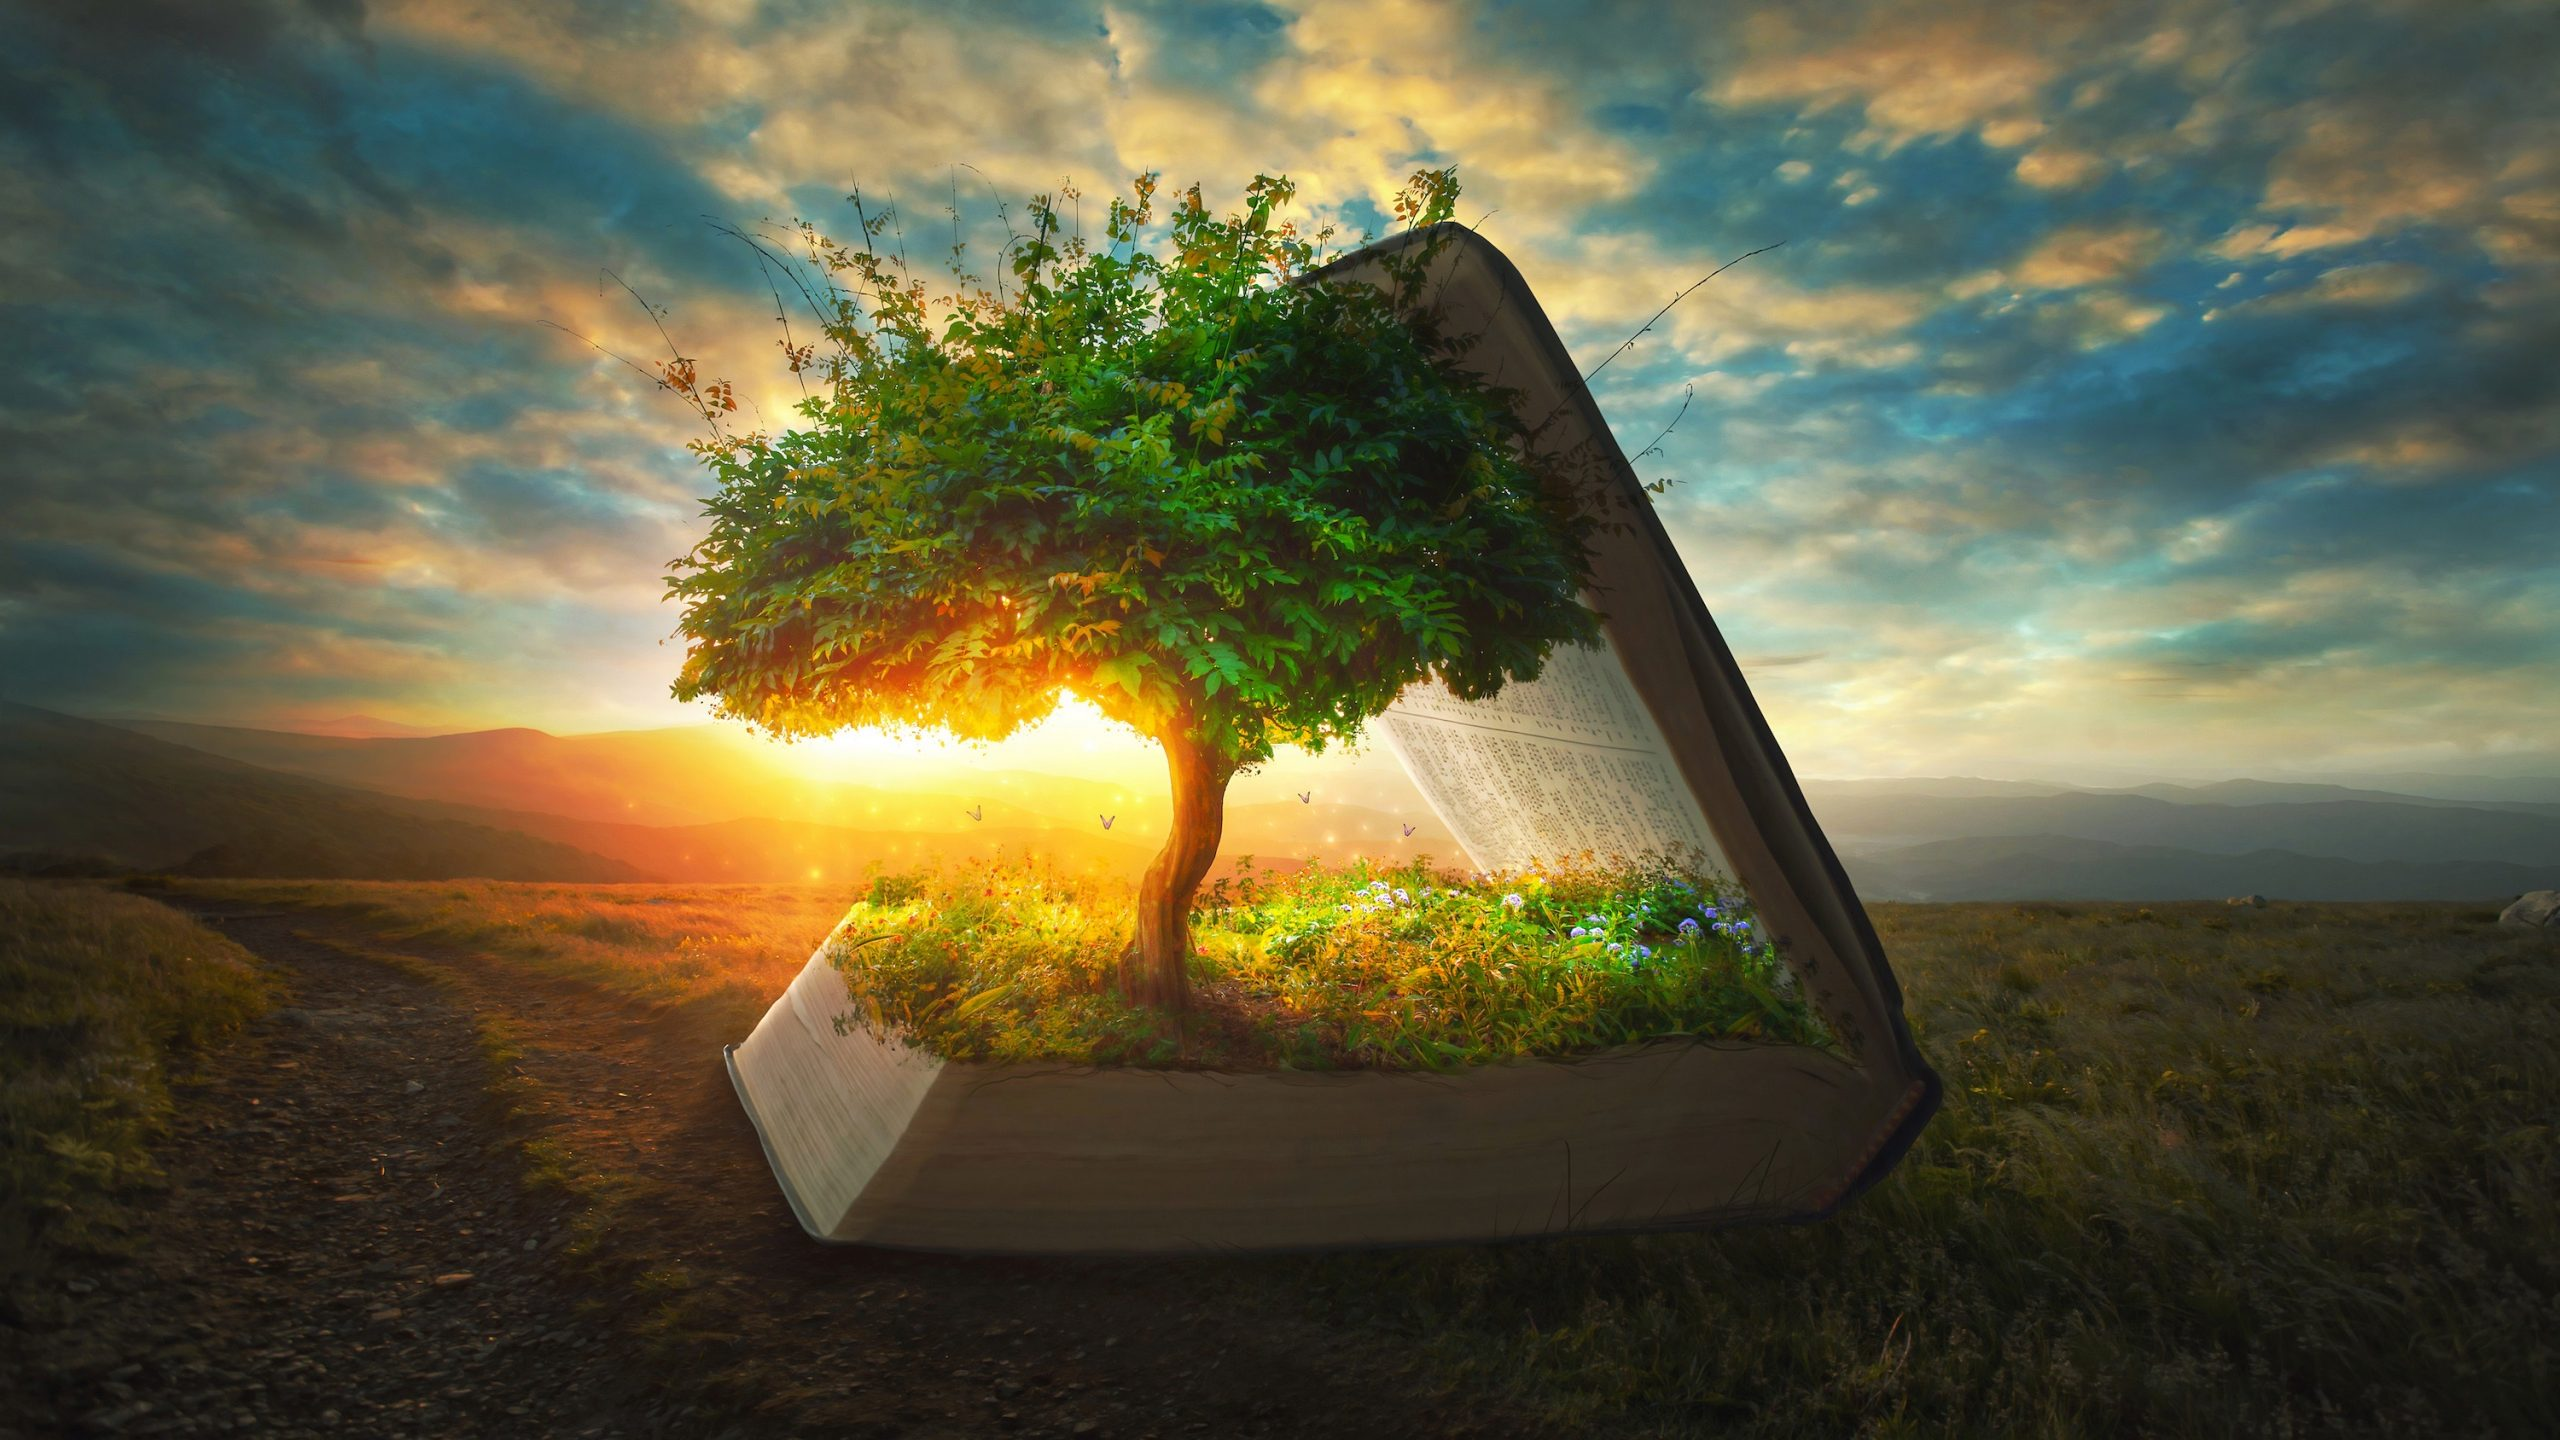 Story springing from Bible